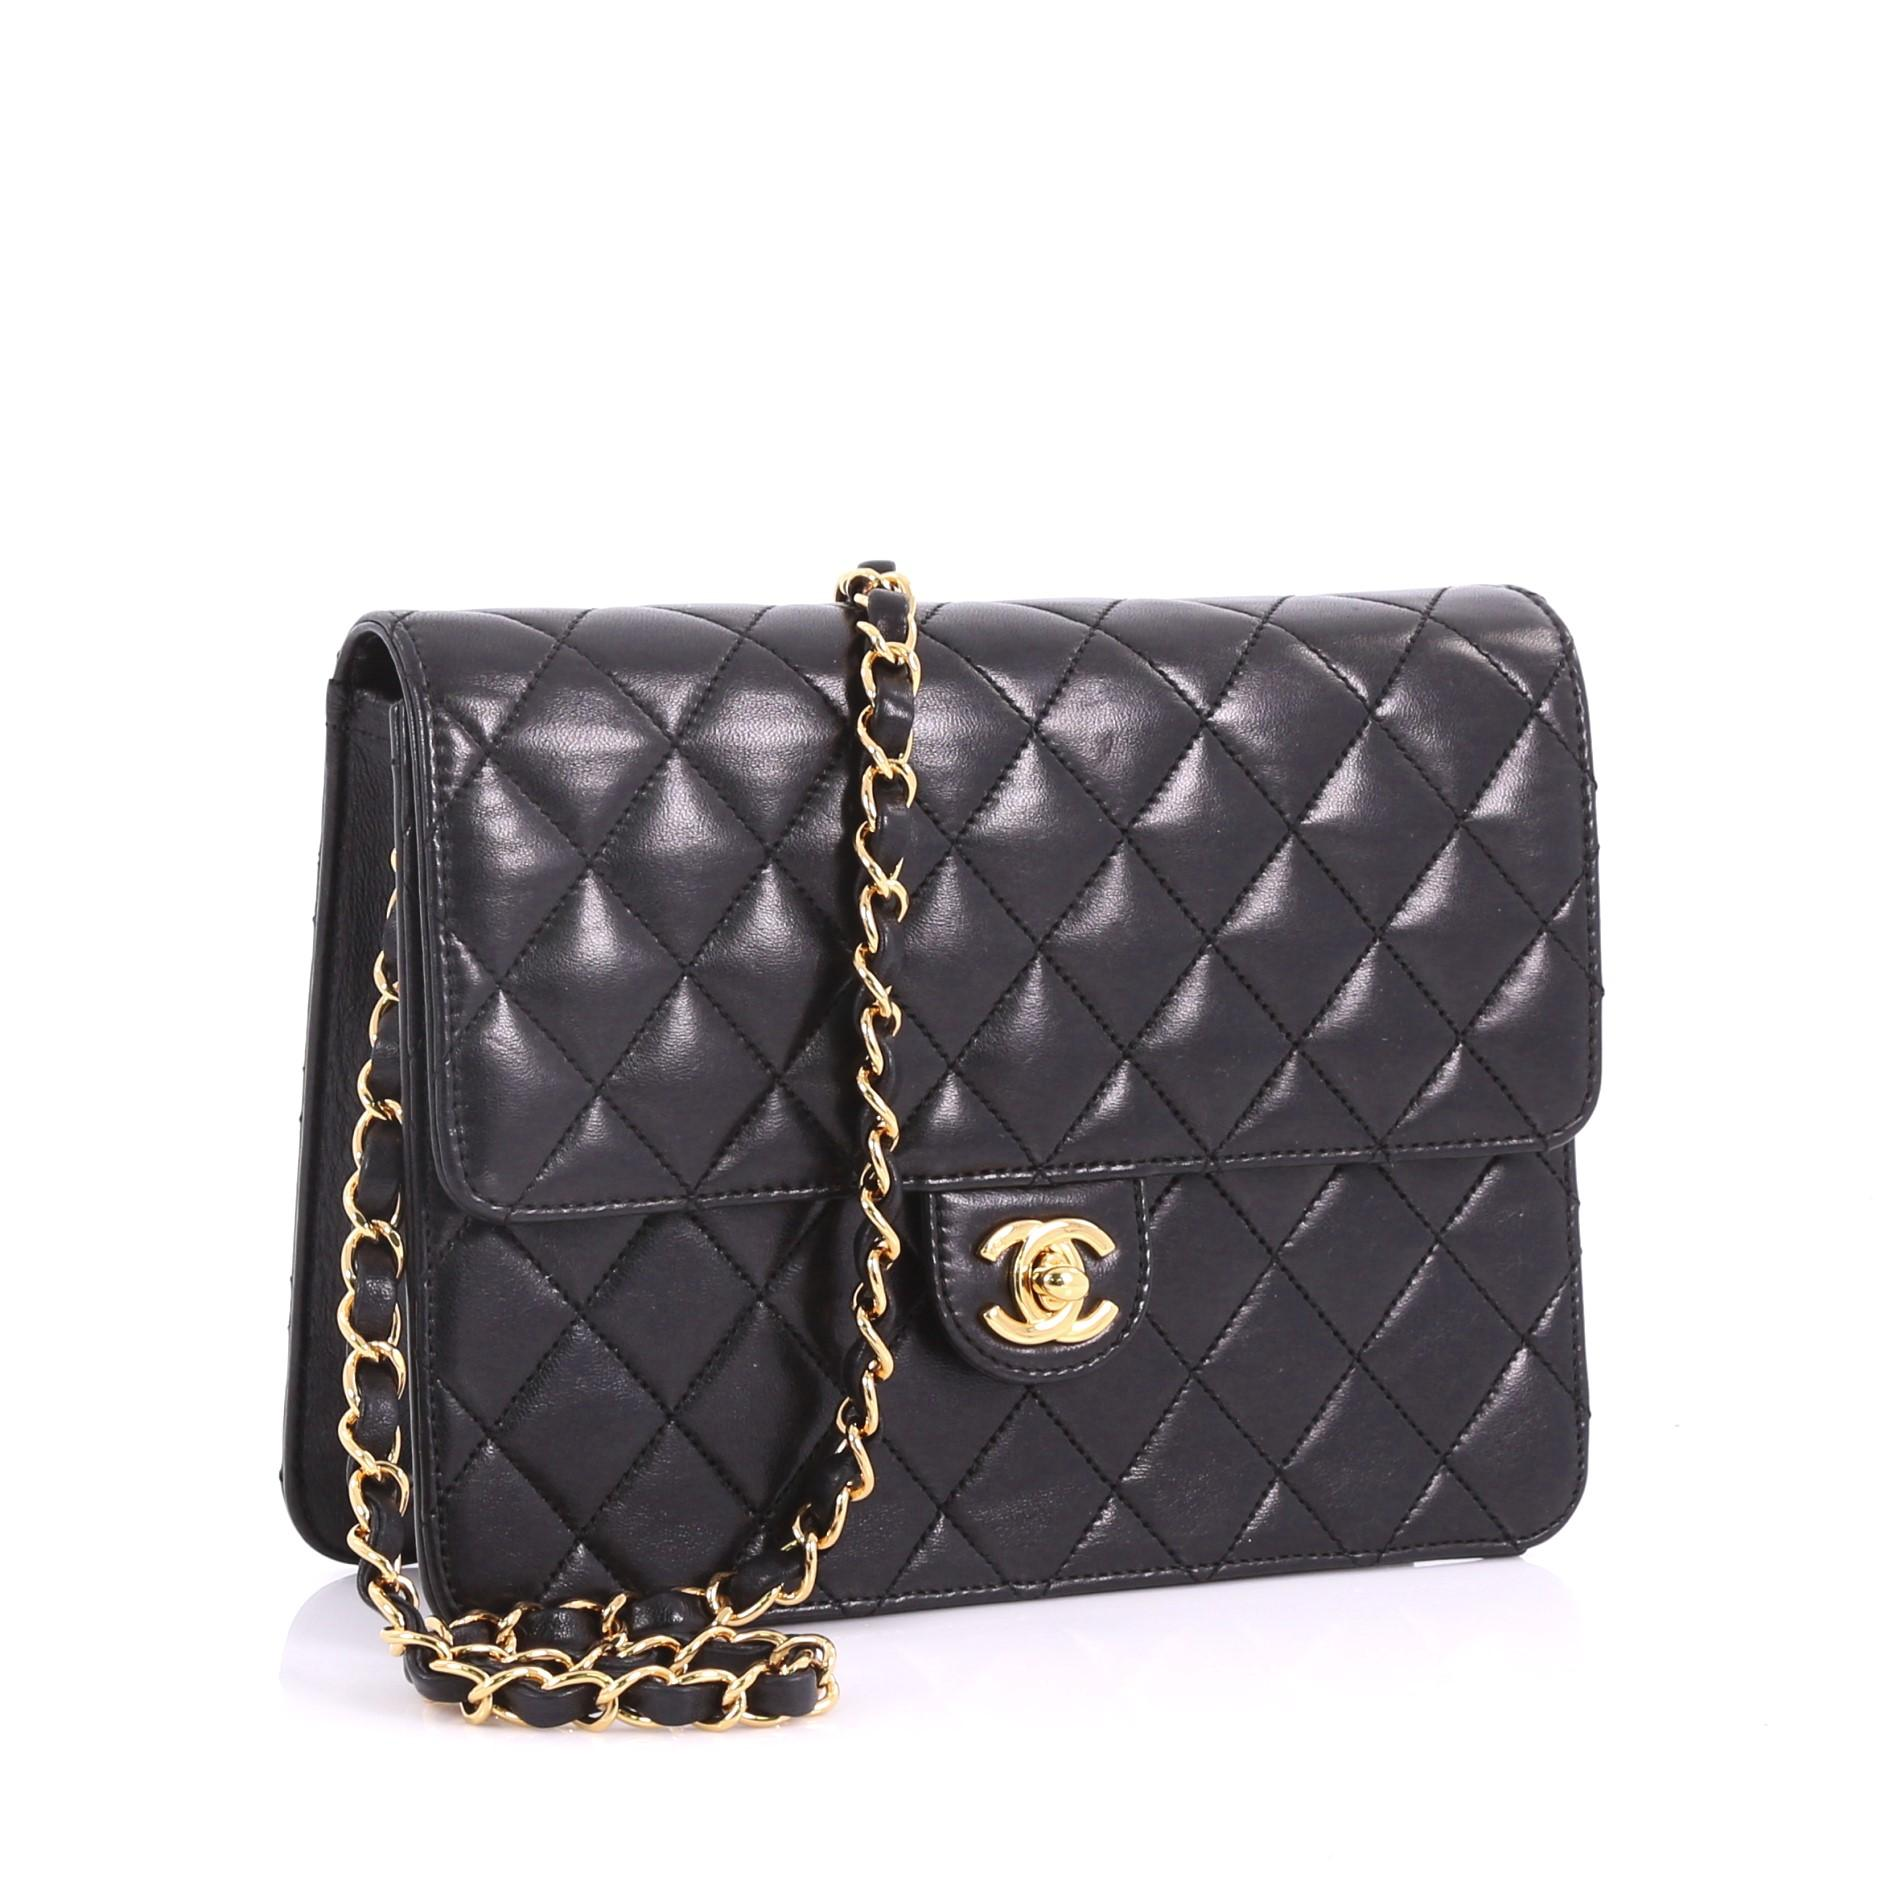 7c35ed9664cc Chanel Vintage Clutch with Chain Quilted Leather Small For Sale at 1stdibs